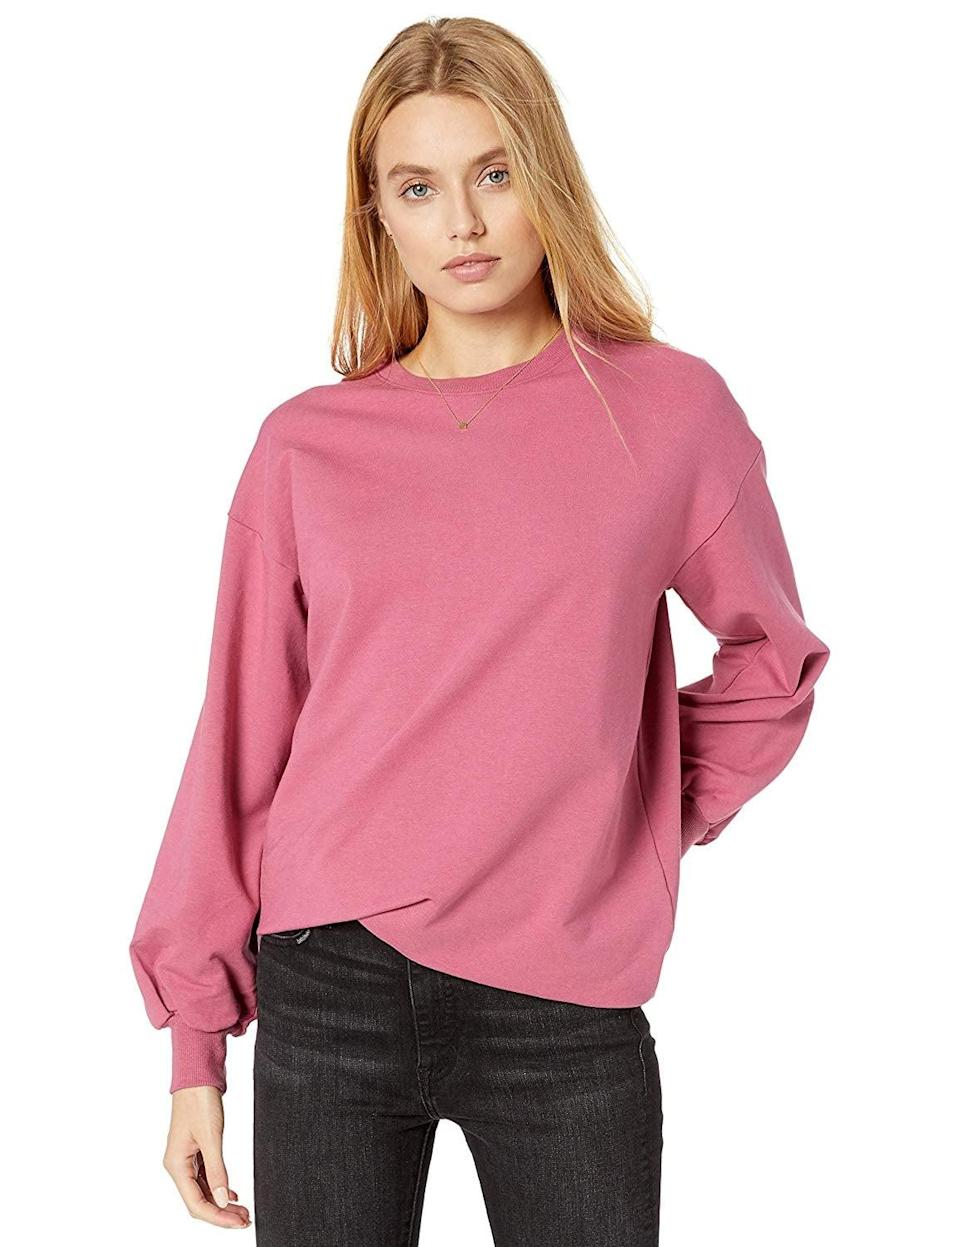 """<p>Get this newly released <a href=""""https://www.popsugar.com/buy/Drop-Kiko-Oversized-Crew-Neck-Sweatshirt-540004?p_name=The%20Drop%20Kiko%20Oversized%20Crew%20Neck%20Sweatshirt&retailer=amazon.com&pid=540004&price=40&evar1=fab%3Aus&evar9=47107205&evar98=https%3A%2F%2Fwww.popsugar.com%2Ffashion%2Fphoto-gallery%2F47107205%2Fimage%2F47107806%2FDrop-Kiko-Oversized-Crew-Neck-Sweatshirt&list1=shopping%2Camazon%2Cwinter%20fashion%2C50%20under%20%2450%2Caffordable%20shopping&prop13=mobile&pdata=1"""" class=""""link rapid-noclick-resp"""" rel=""""nofollow noopener"""" target=""""_blank"""" data-ylk=""""slk:The Drop Kiko Oversized Crew Neck Sweatshirt"""">The Drop Kiko Oversized Crew Neck Sweatshirt</a> ($40) before it sells out.</p>"""